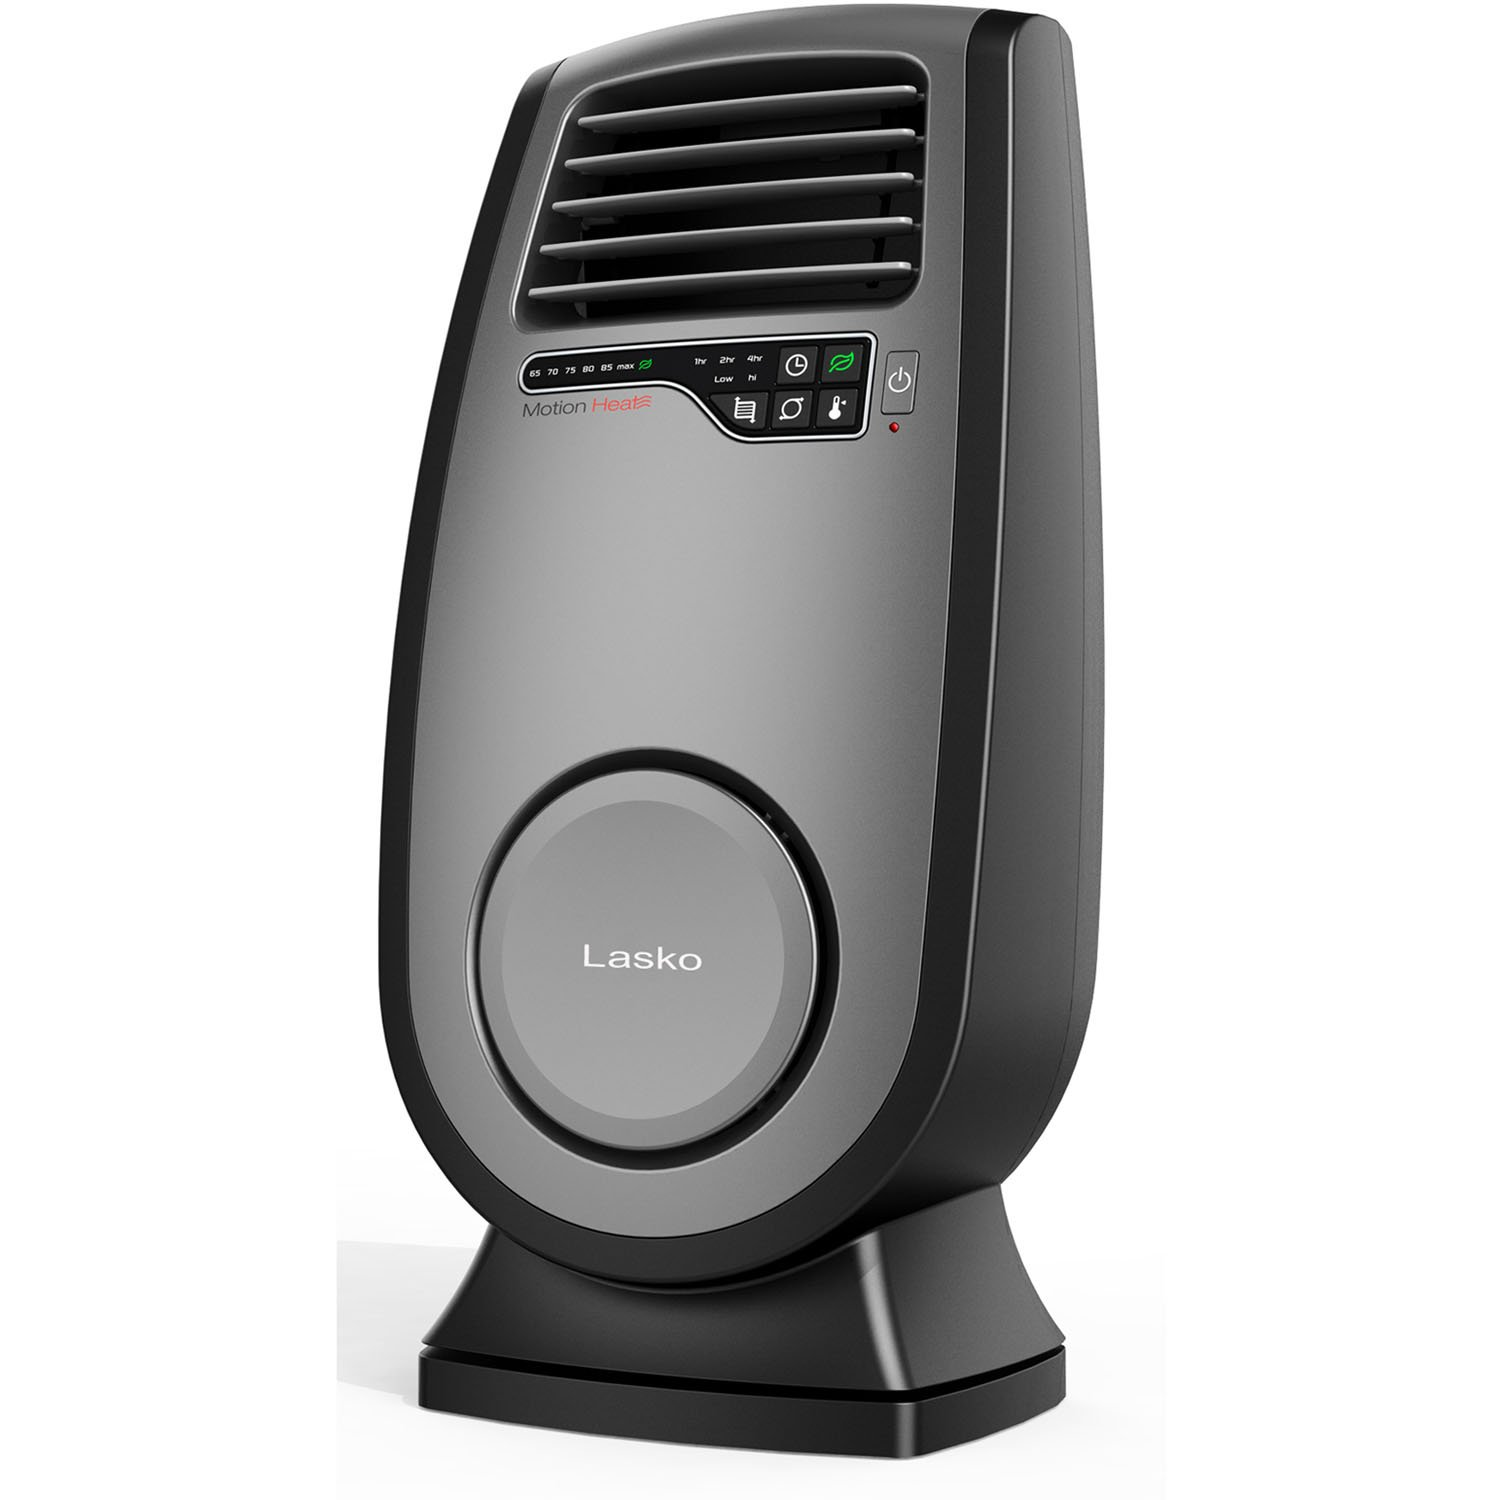 Amazon.com: Lasko Ceramic Room Heater With 3D Motion Heat Technology,  Electronic Touch Control Operation, Adjustable Thermostat With 2 Comfort  Settings, ...